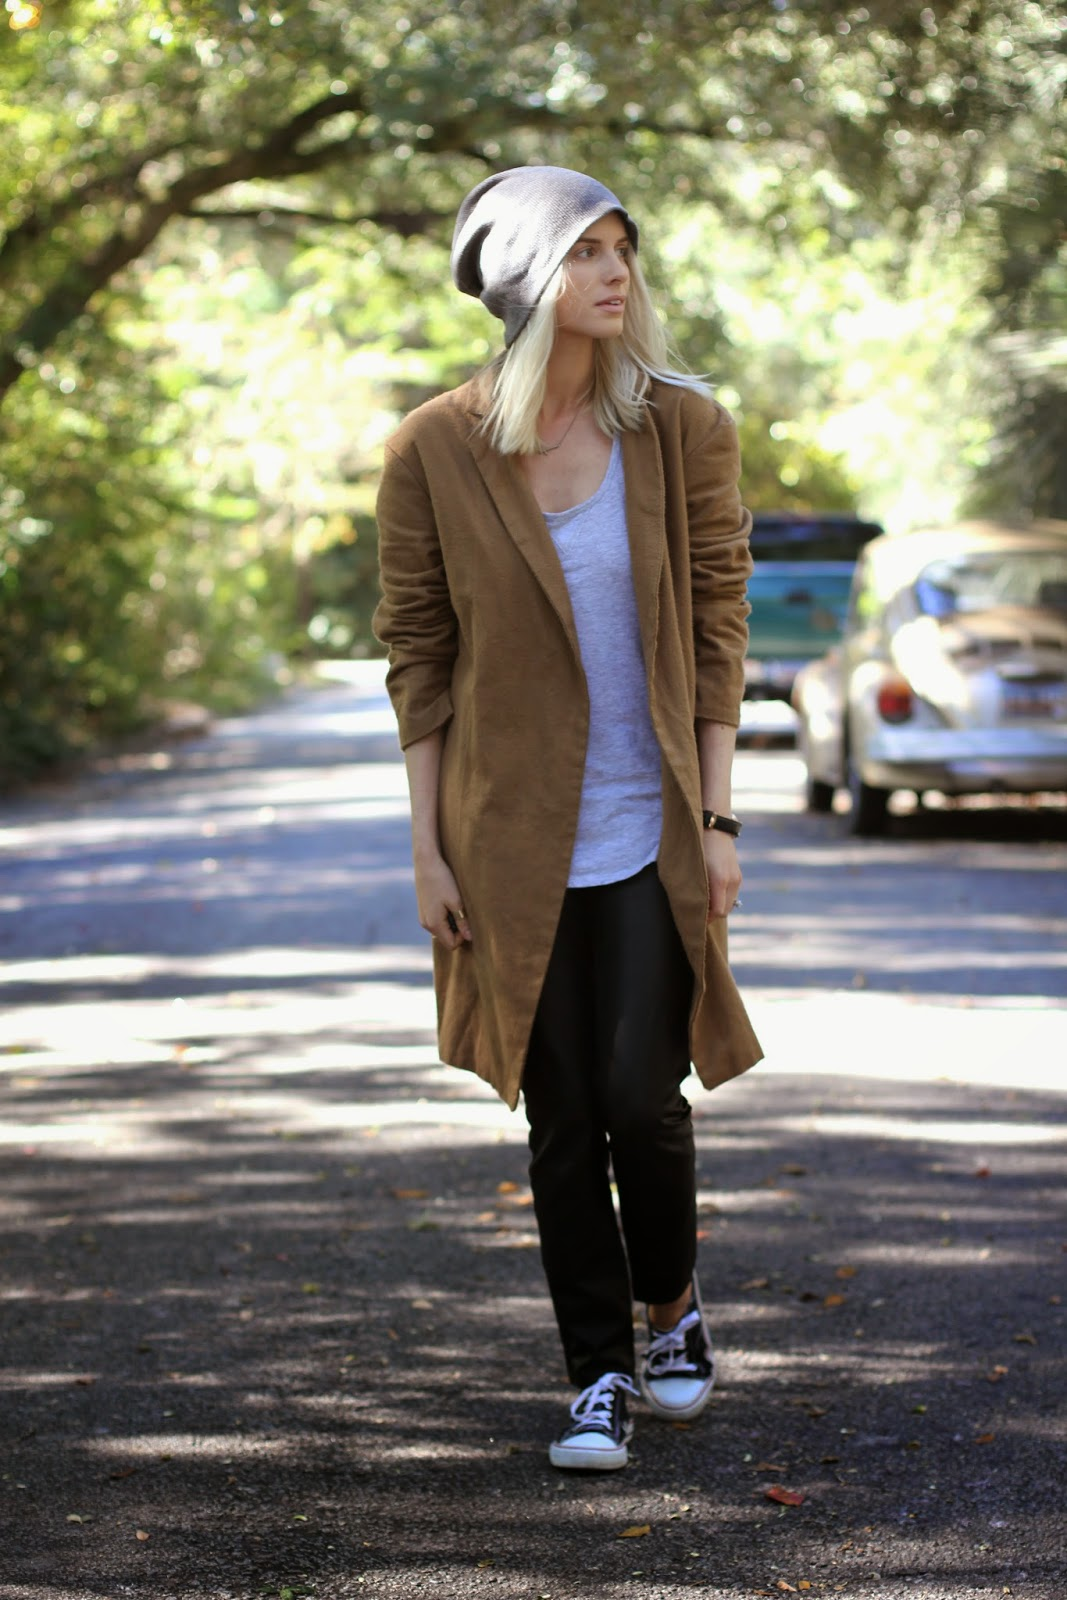 fall autumn street style 2014 charleston sc like the yogurt fashion blogger dannon k collard oversized camel coat grey gray boyfriend tank target gold sideways gross necklace daniel wellington lady sheffield watch rose gold grey skater baggie beanie platinum blonde long bob hair tan natural makeup leather pants hm converse walmart shoes cold weather outfits ootd zara